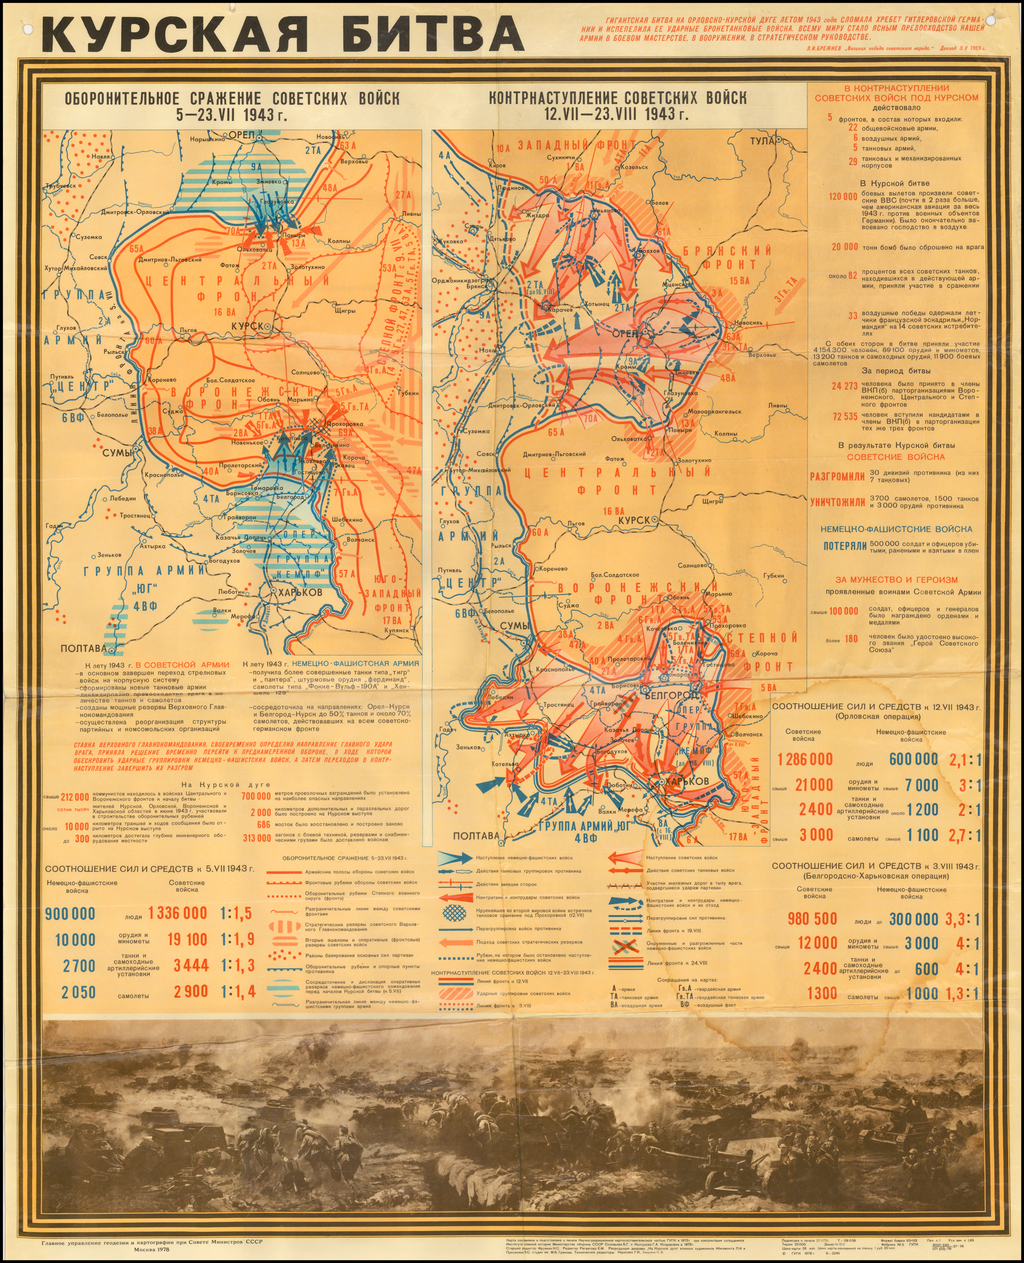 Курская битва (Battle of Kursk)  [Russian Educational Wall Map -- 1943] By CCCP Ministers Dept of Topography & Cartography